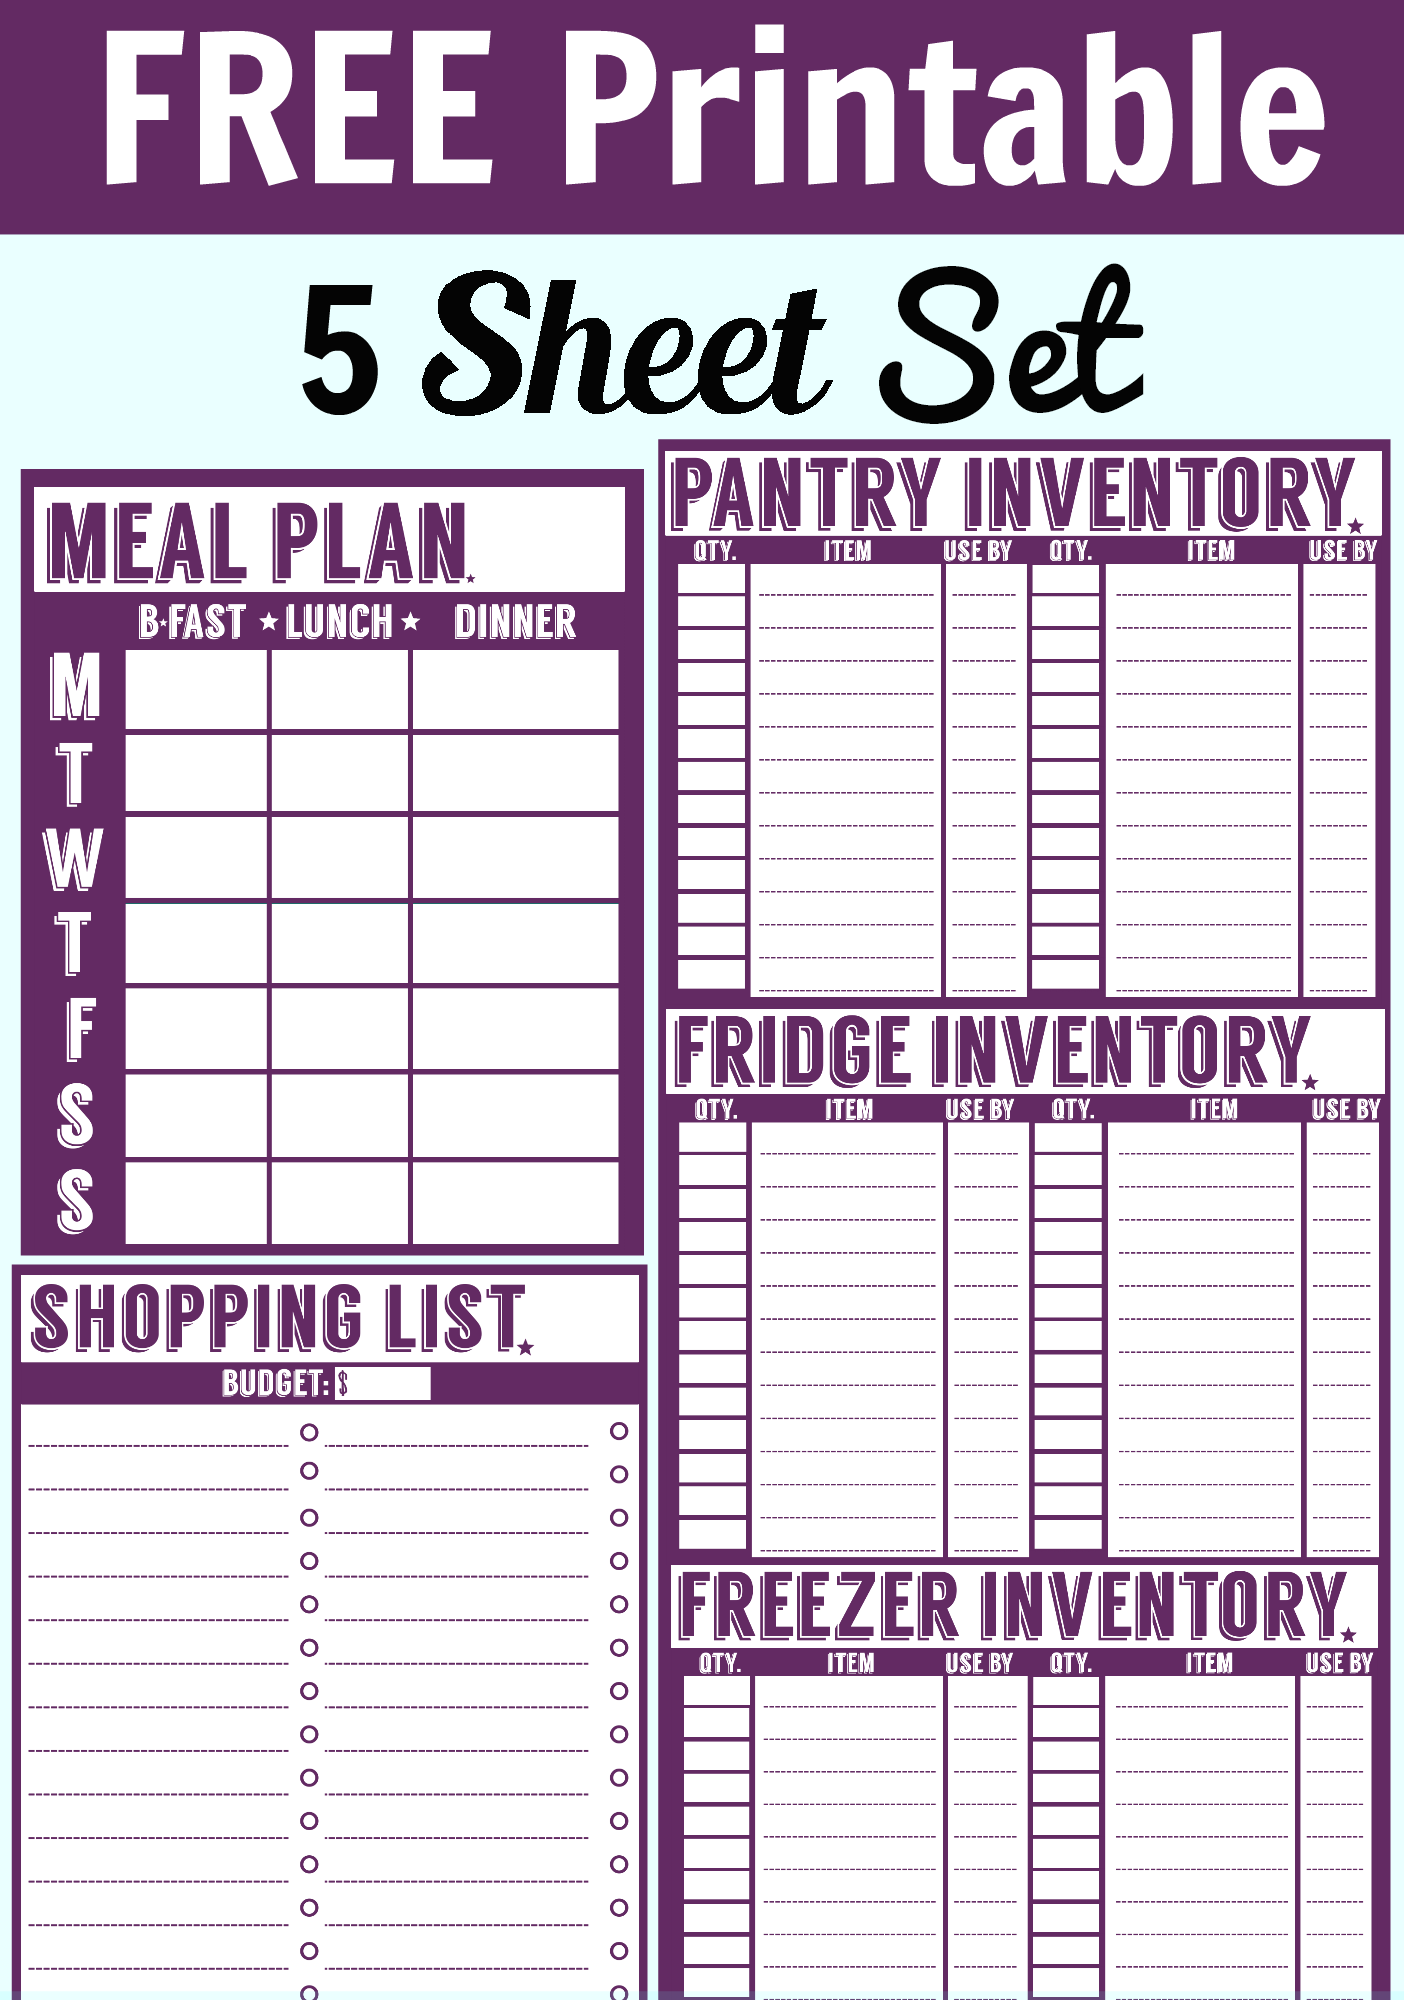 6 Images of Free Printable Menu Sheets